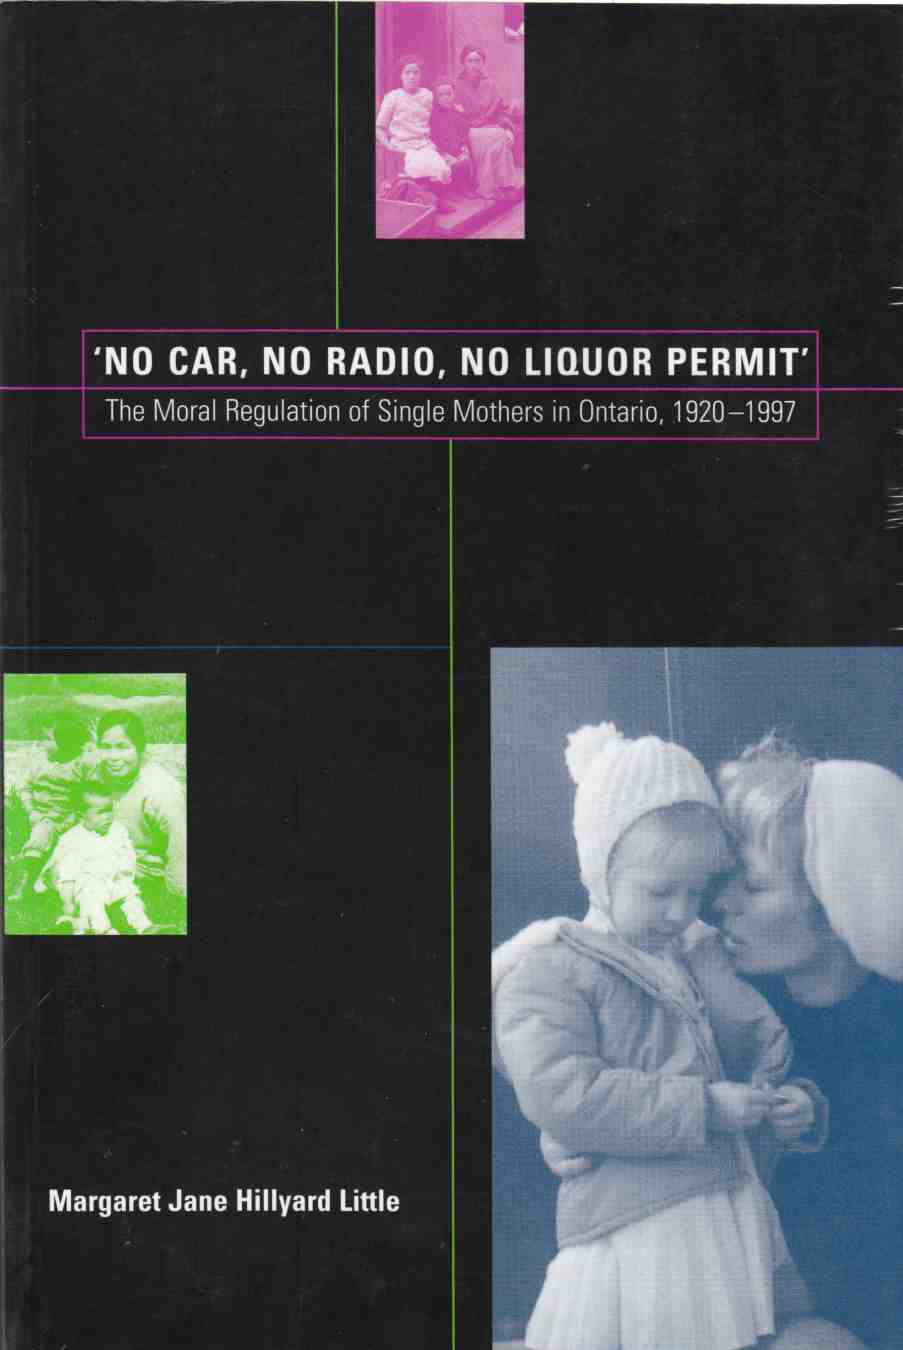 Image for 'No Car, No Radio, No Liquor Permit' The Moral Regulation of Single Mothers in Ontario, 1920-1997